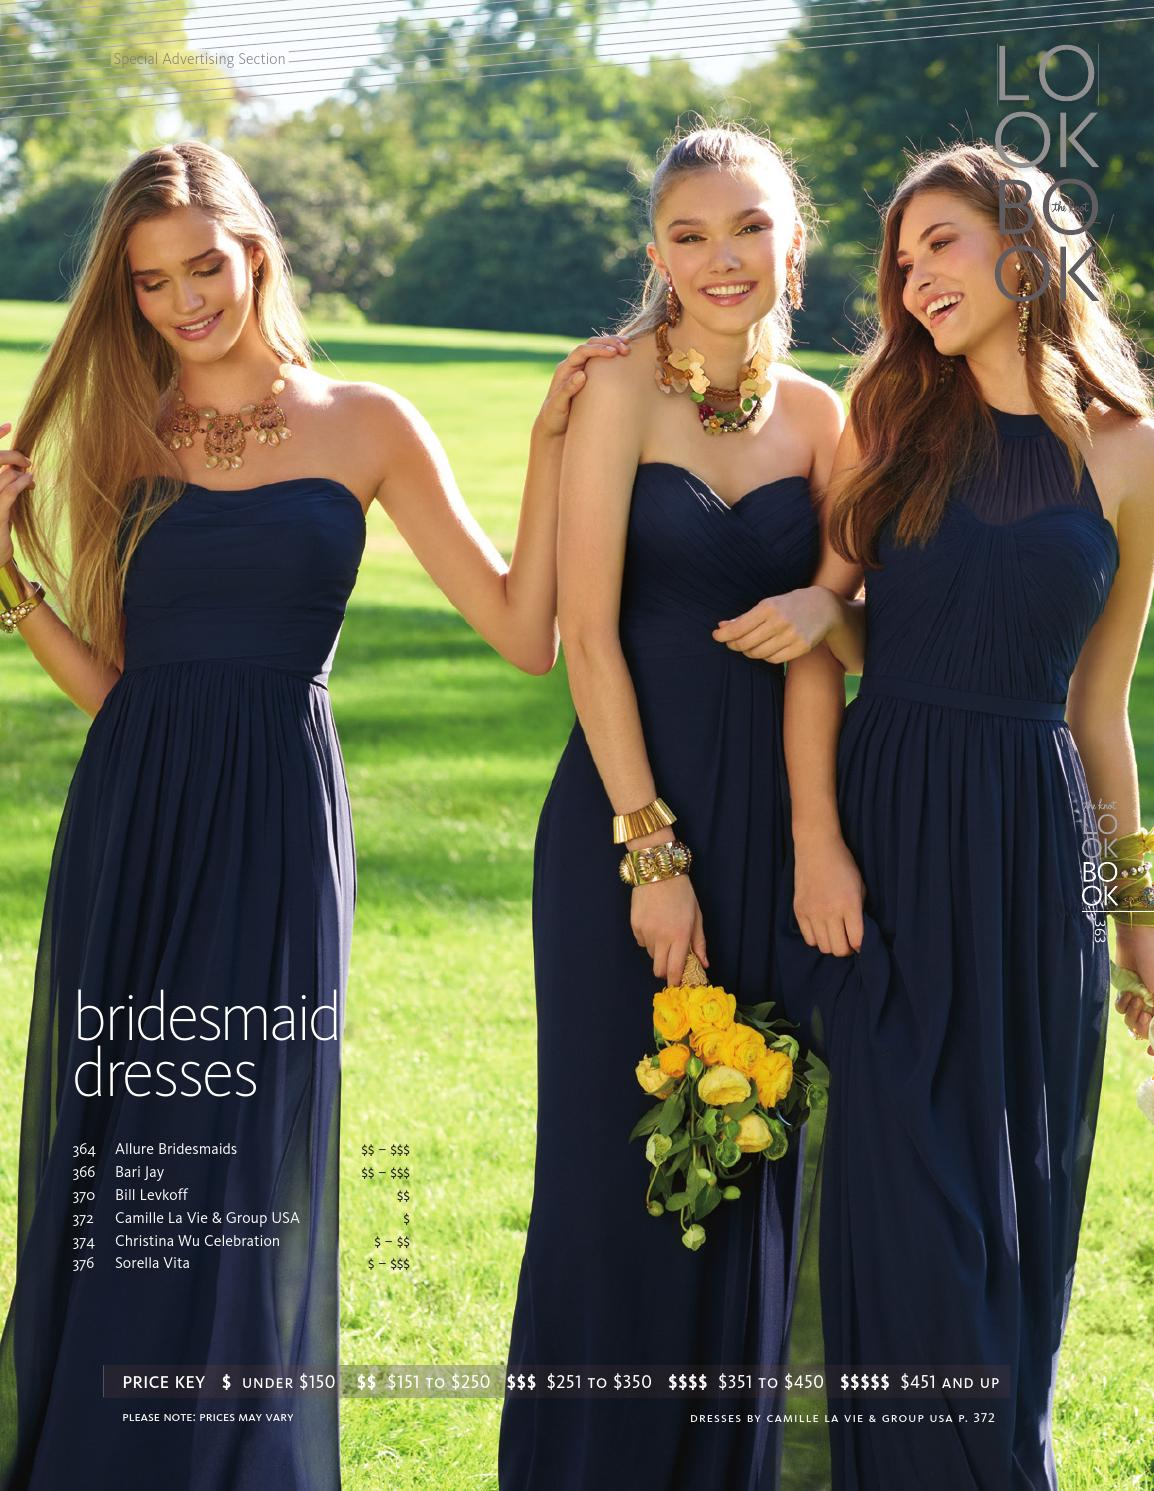 Group usa bridesmaid dresses image collections braidsmaid dress group usa bridesmaid dresses gallery braidsmaid dress cocktail the knot summer 2016 by the knot issuu ombrellifo Images